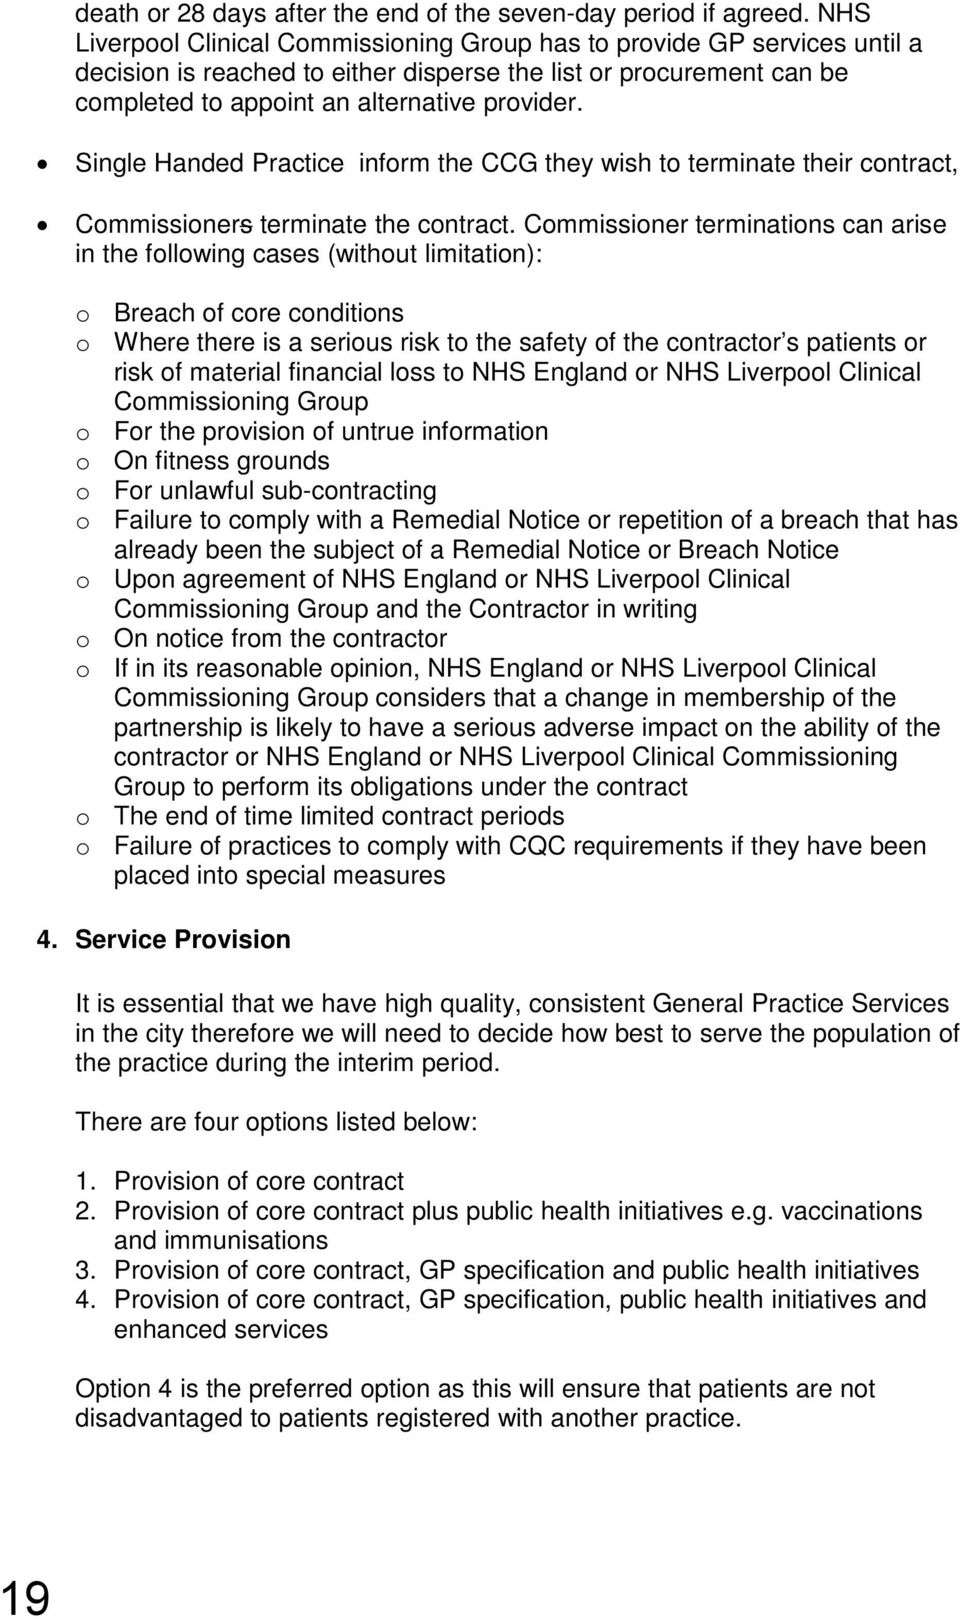 How to write a service specification nhs